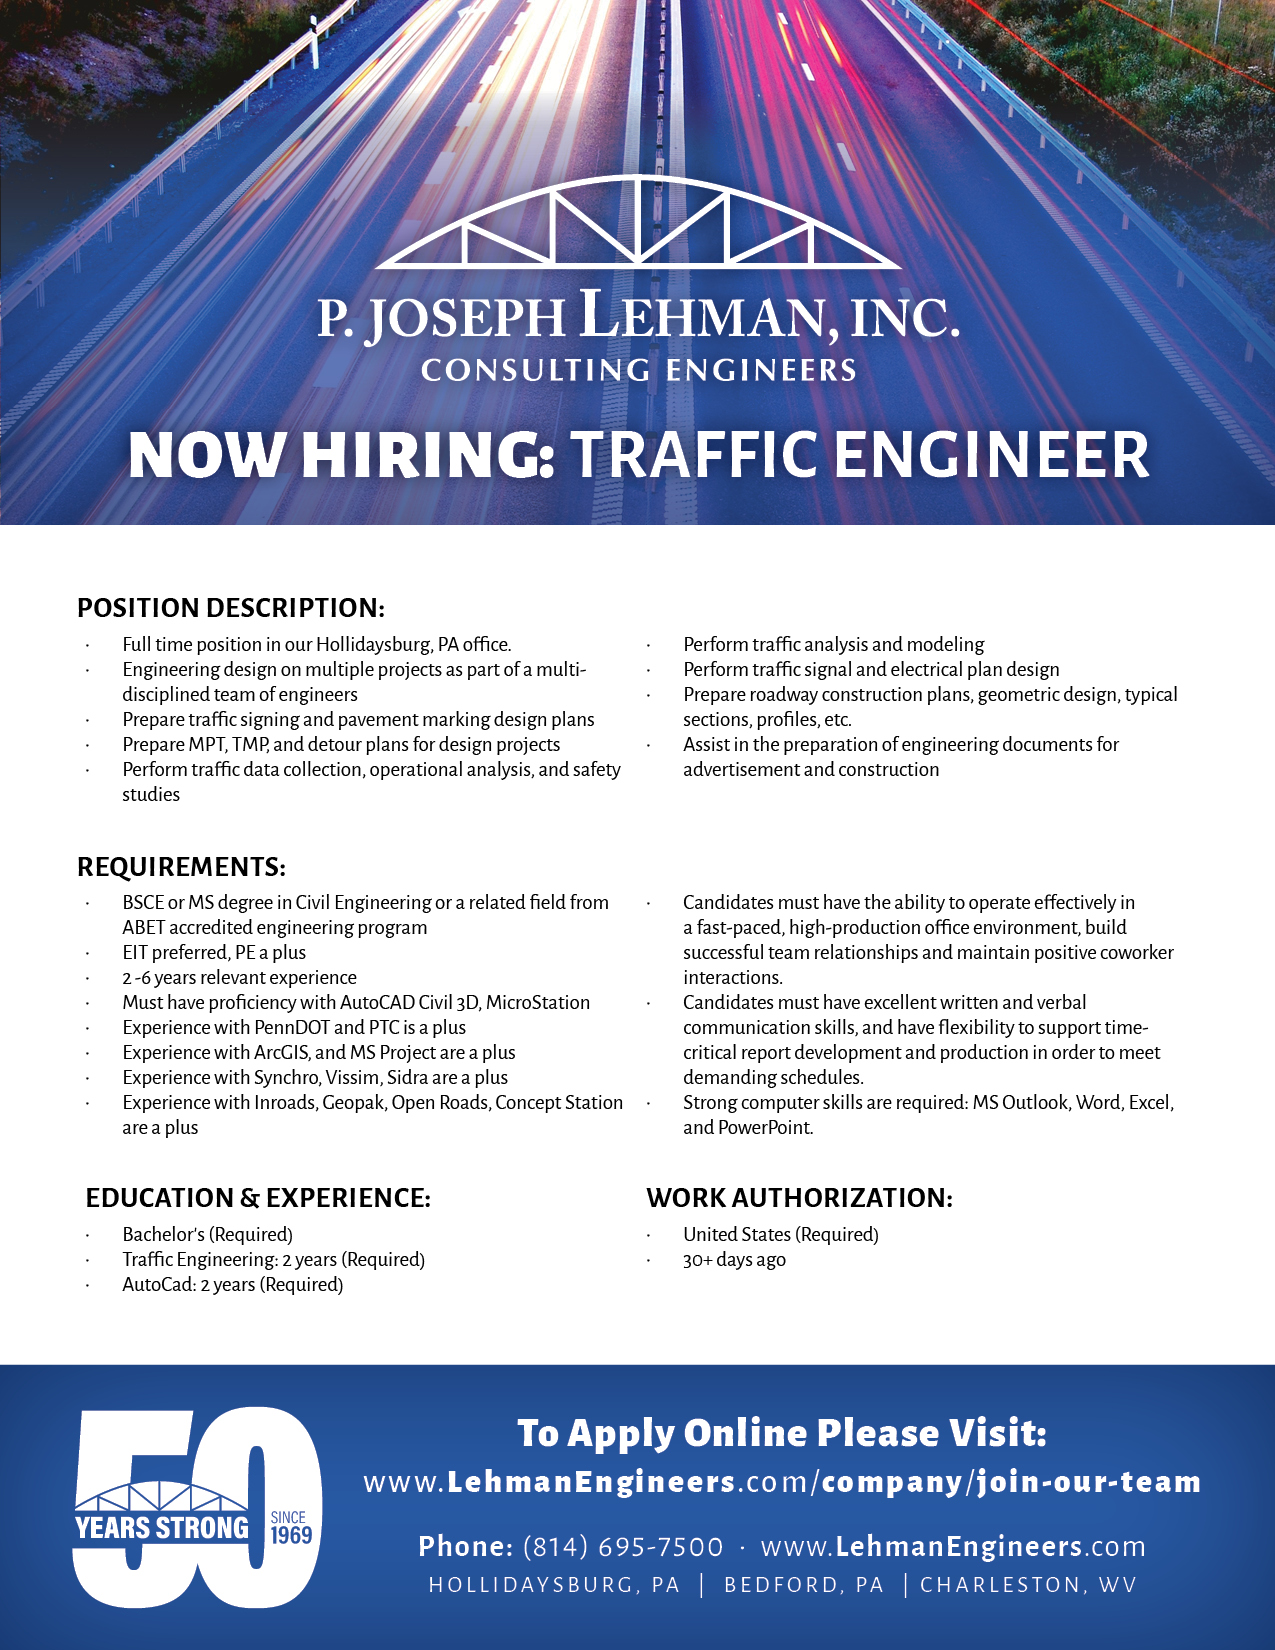 Traffic Engineer Opening 8 5x11 219 - Lehman Engineers